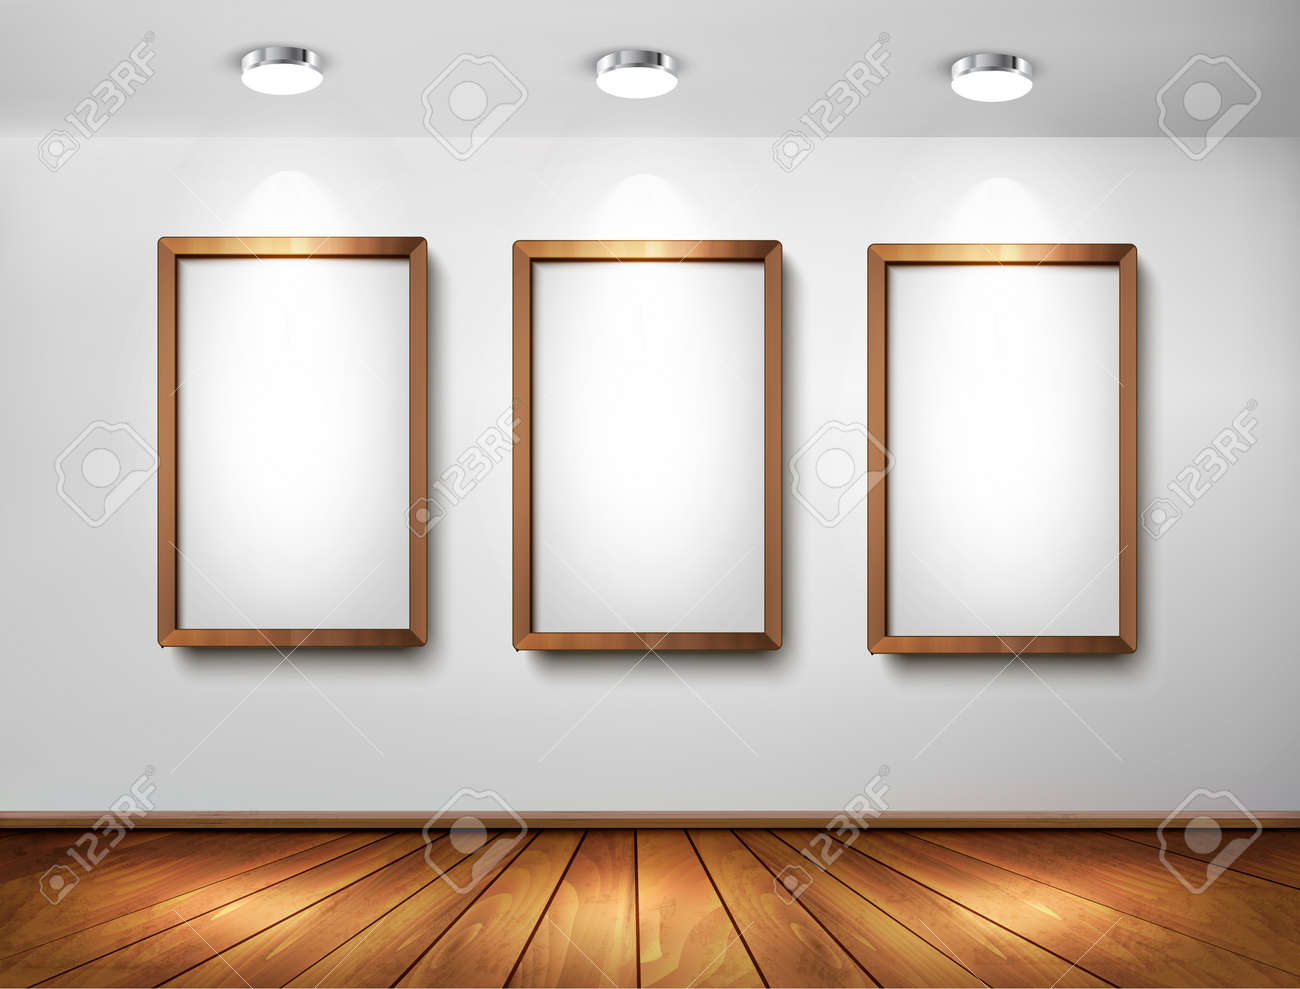 Empty Wooden Frames On Wall With Spotlights And Wooden Floor ...